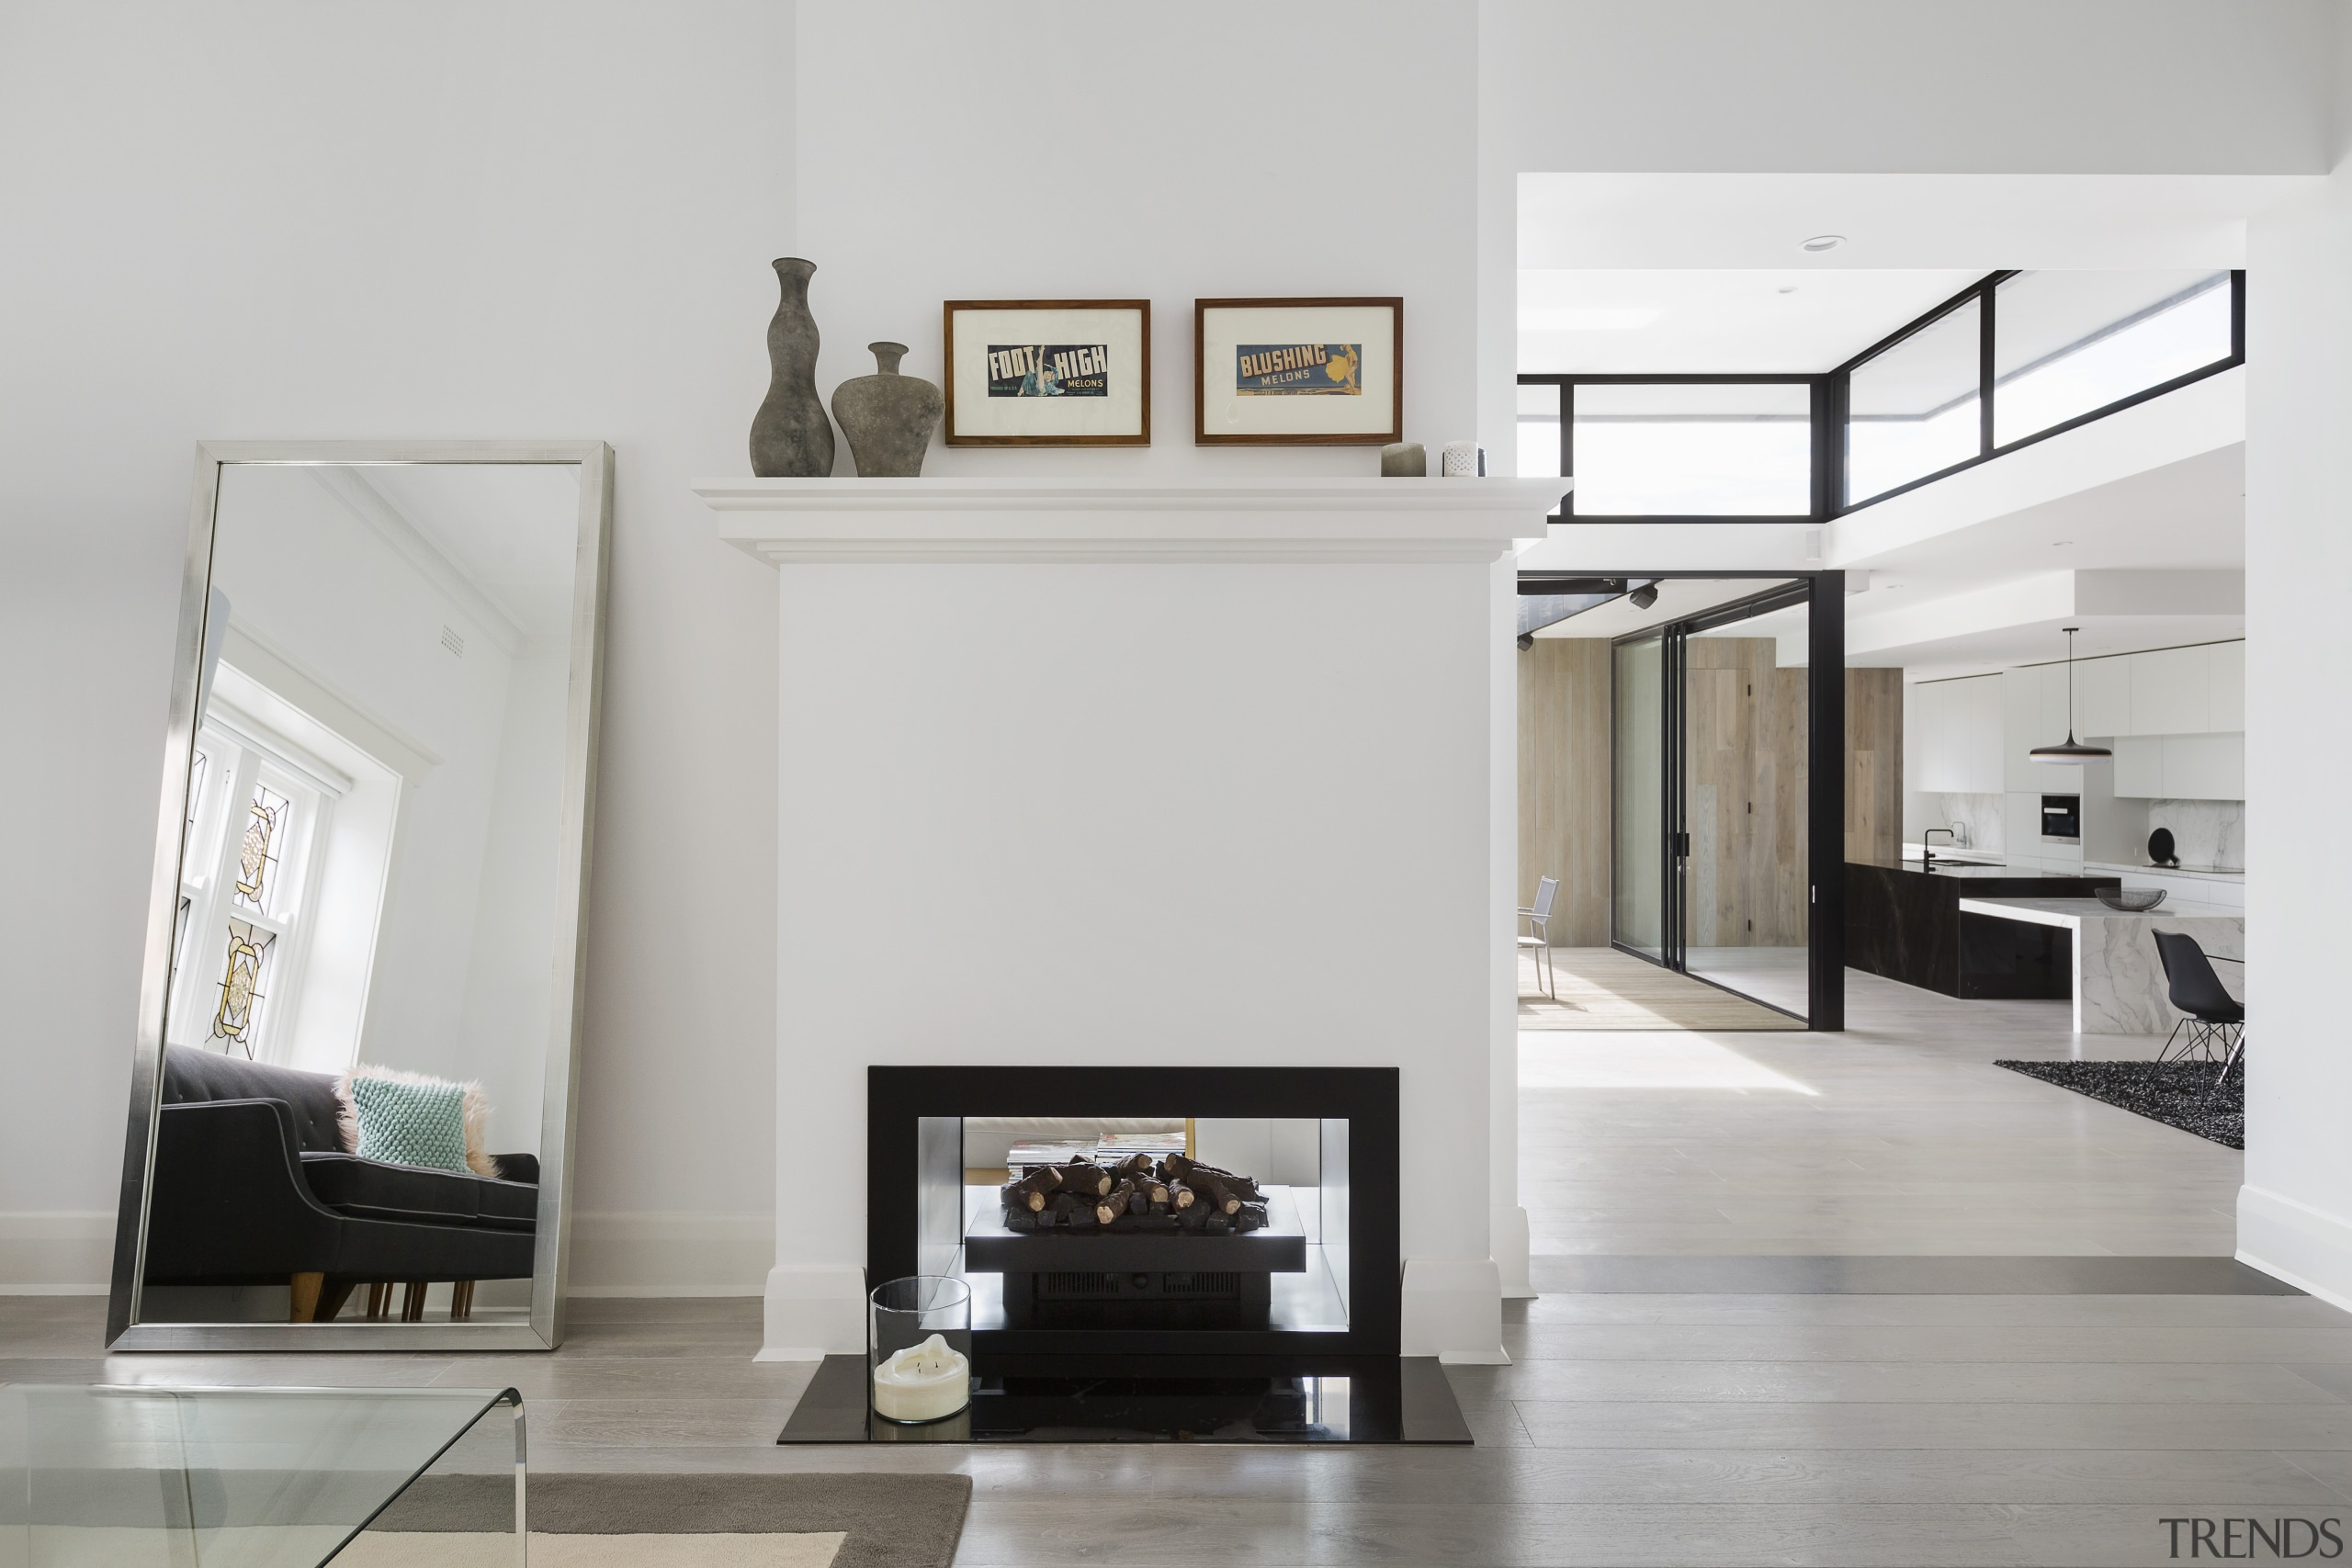 ​​​​​​​This view is from the existing part of home appliancfireplace, floor, flooring, timber, furniture, hearth, living room, family room, LSA Architects